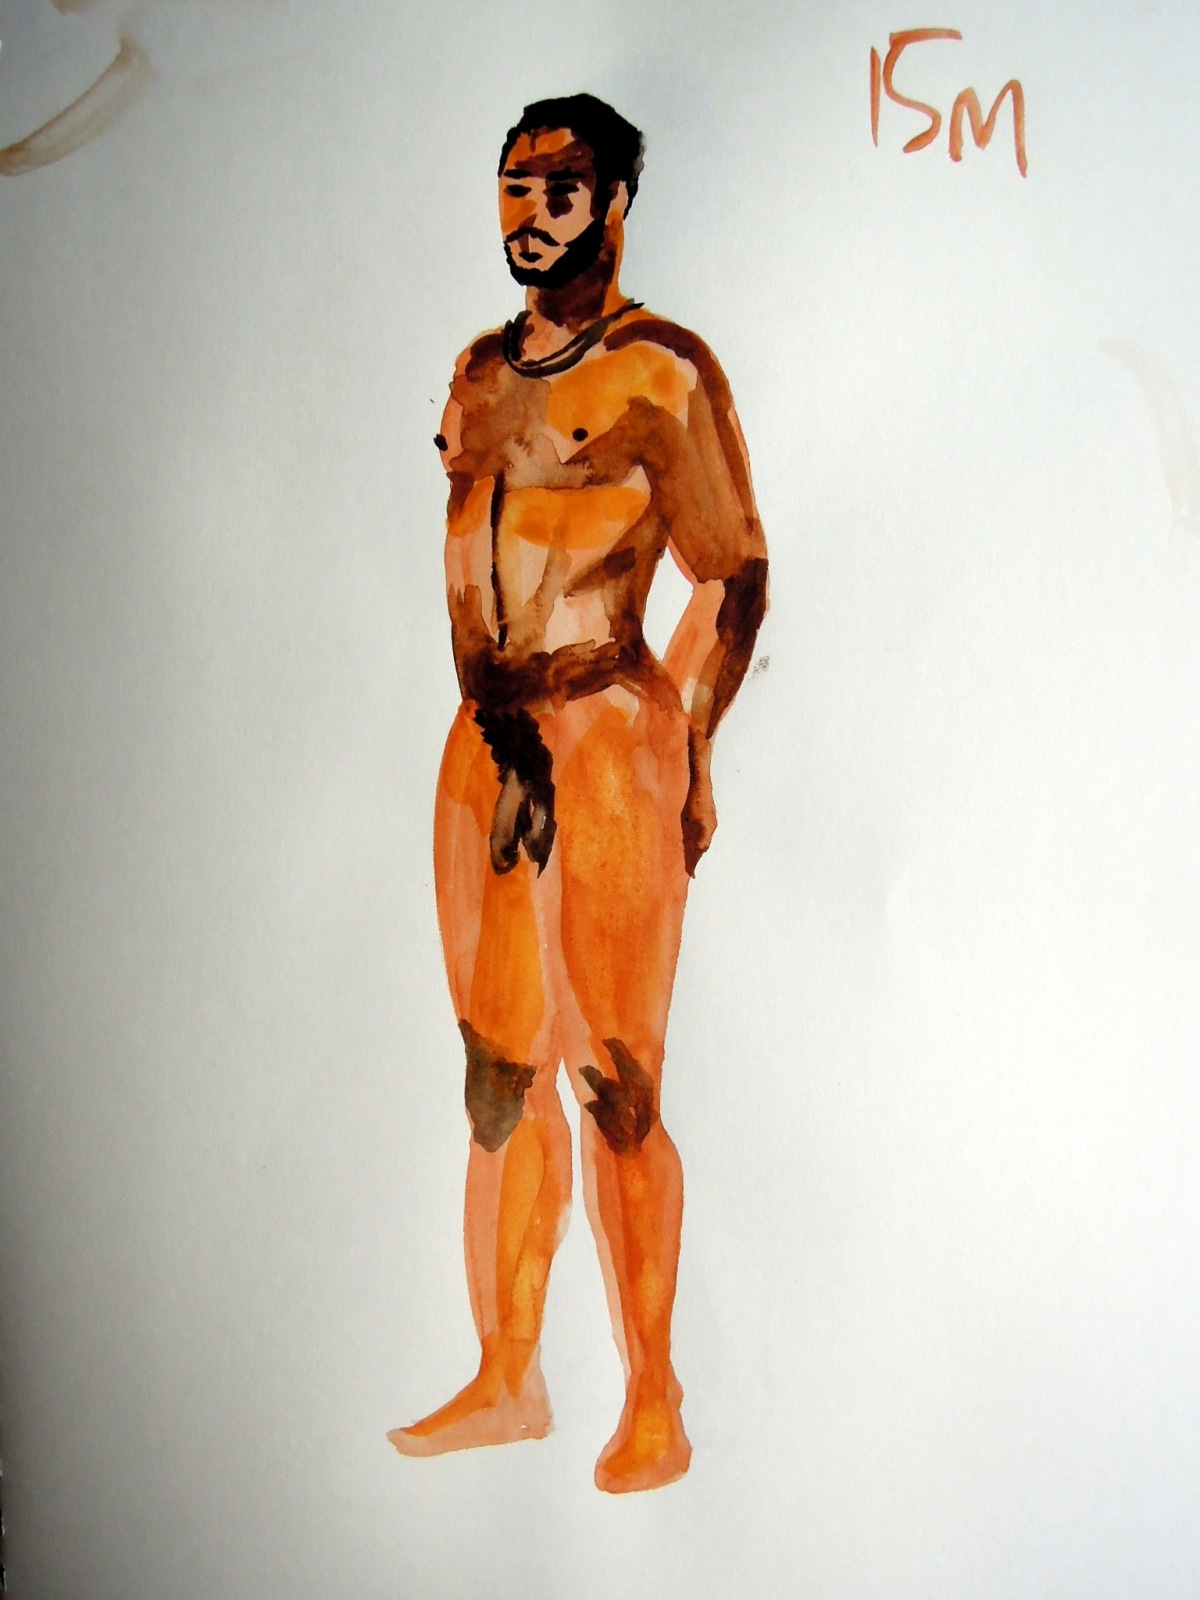 Watercolor sketch of nude man standing